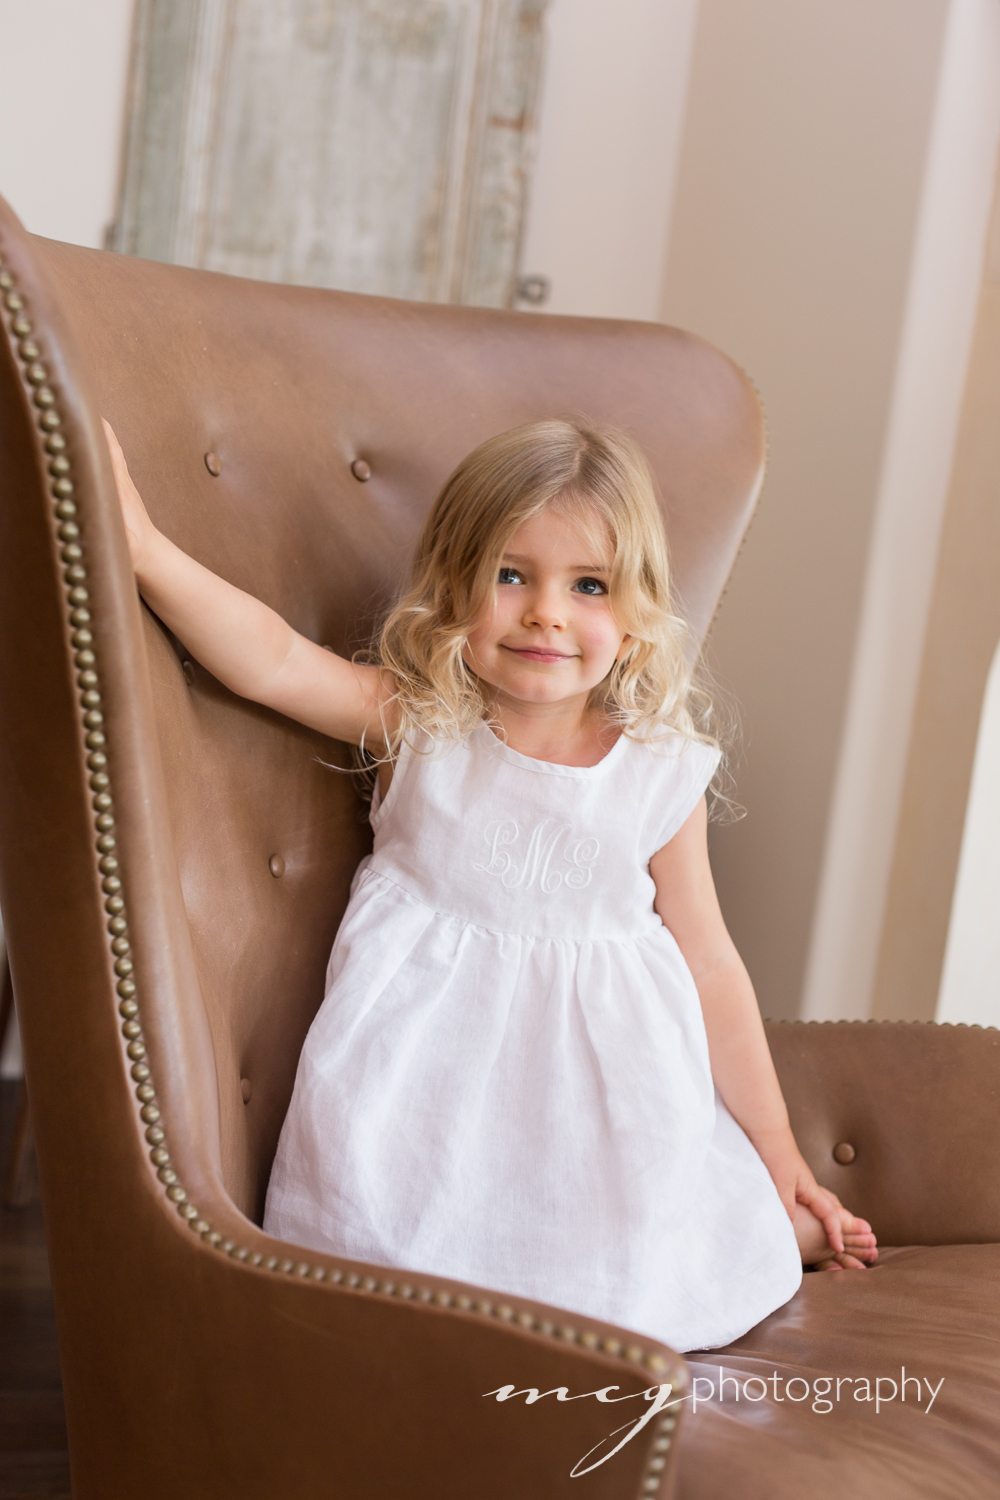 mcg_photography_home_portraits-mod_chair.jpg